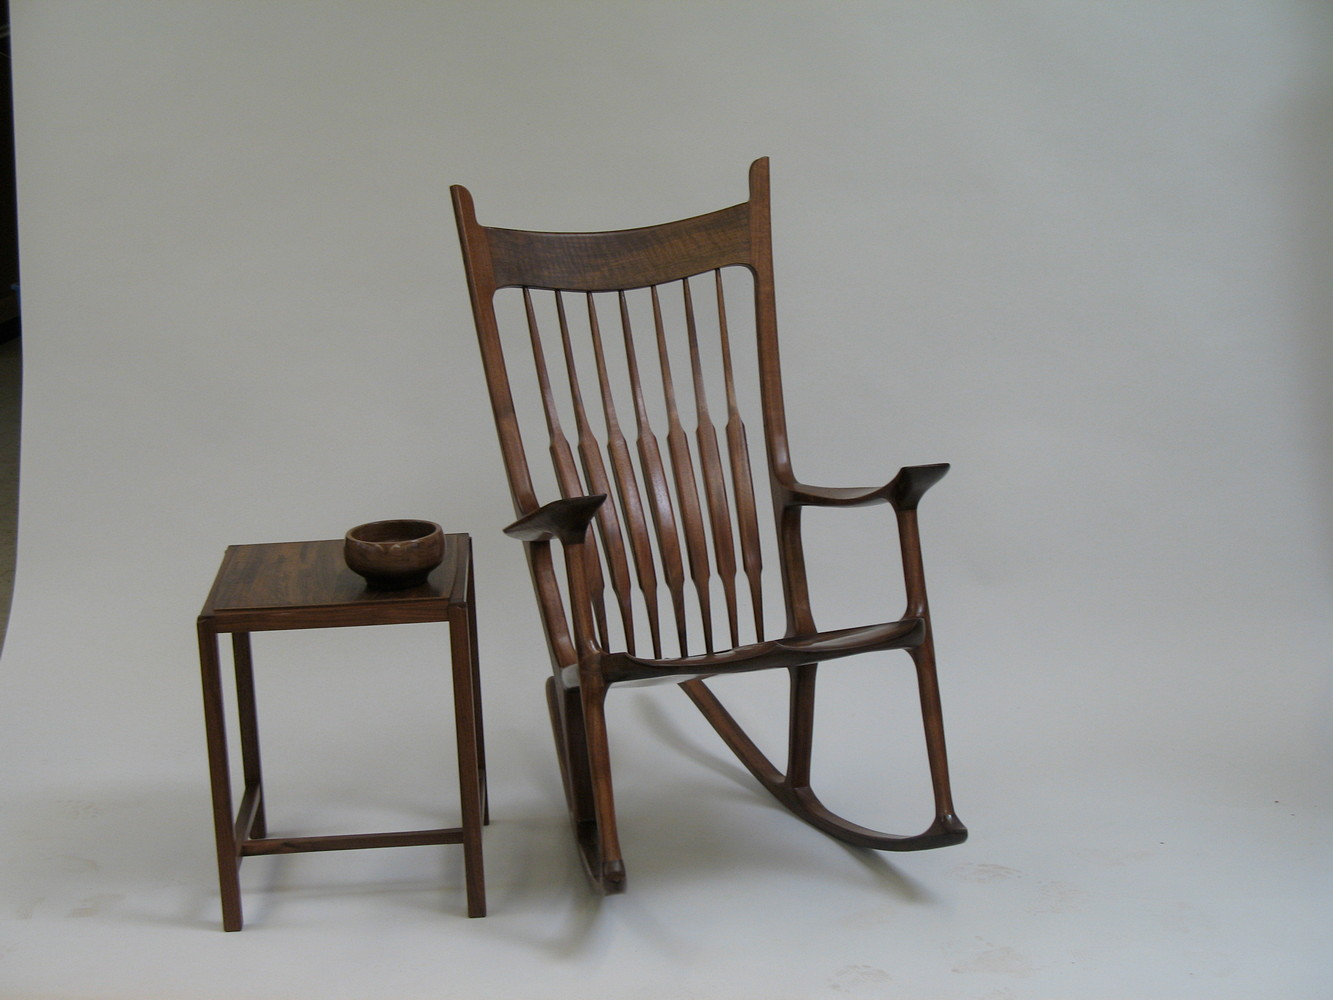 rocking chair fine woodworking black directors uk  mcanulty furniture carvings